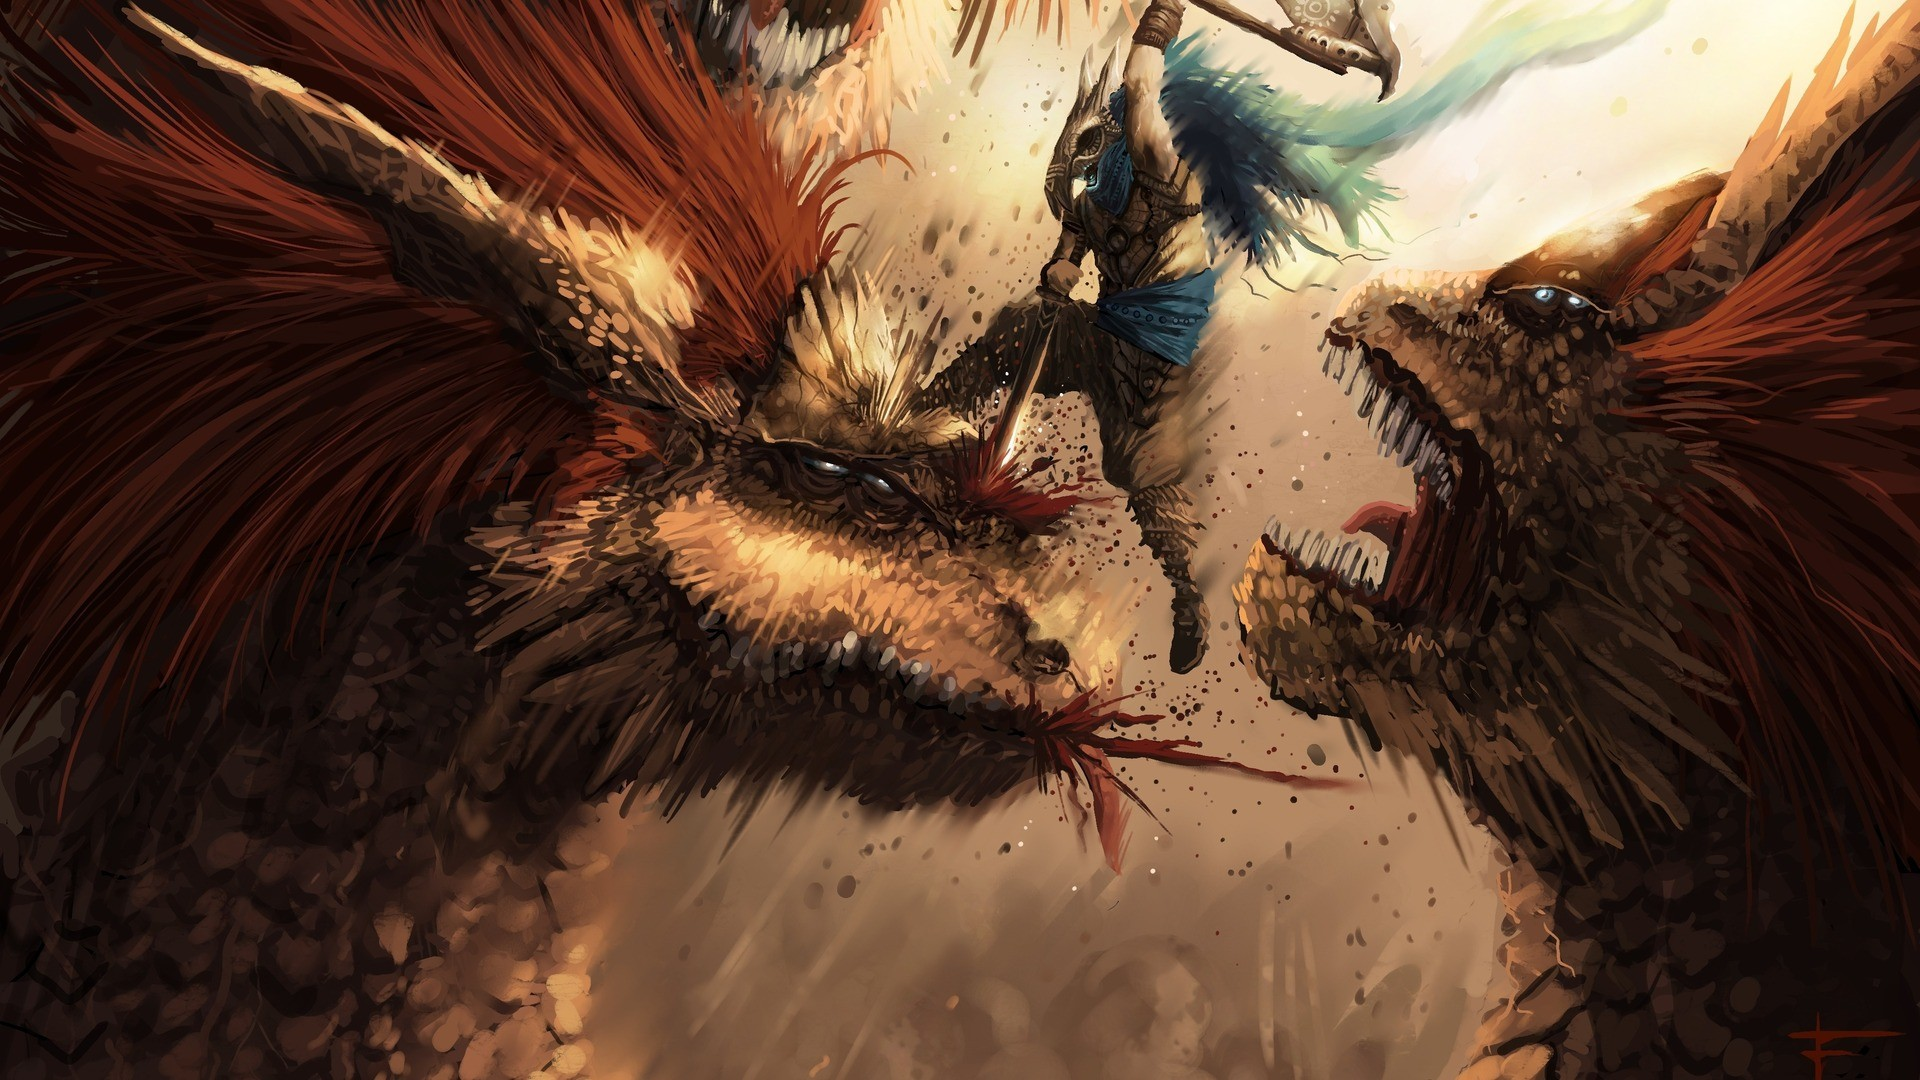 wallpaper monster hunter hd gratuit 224 t233l233charger sur ngn mag